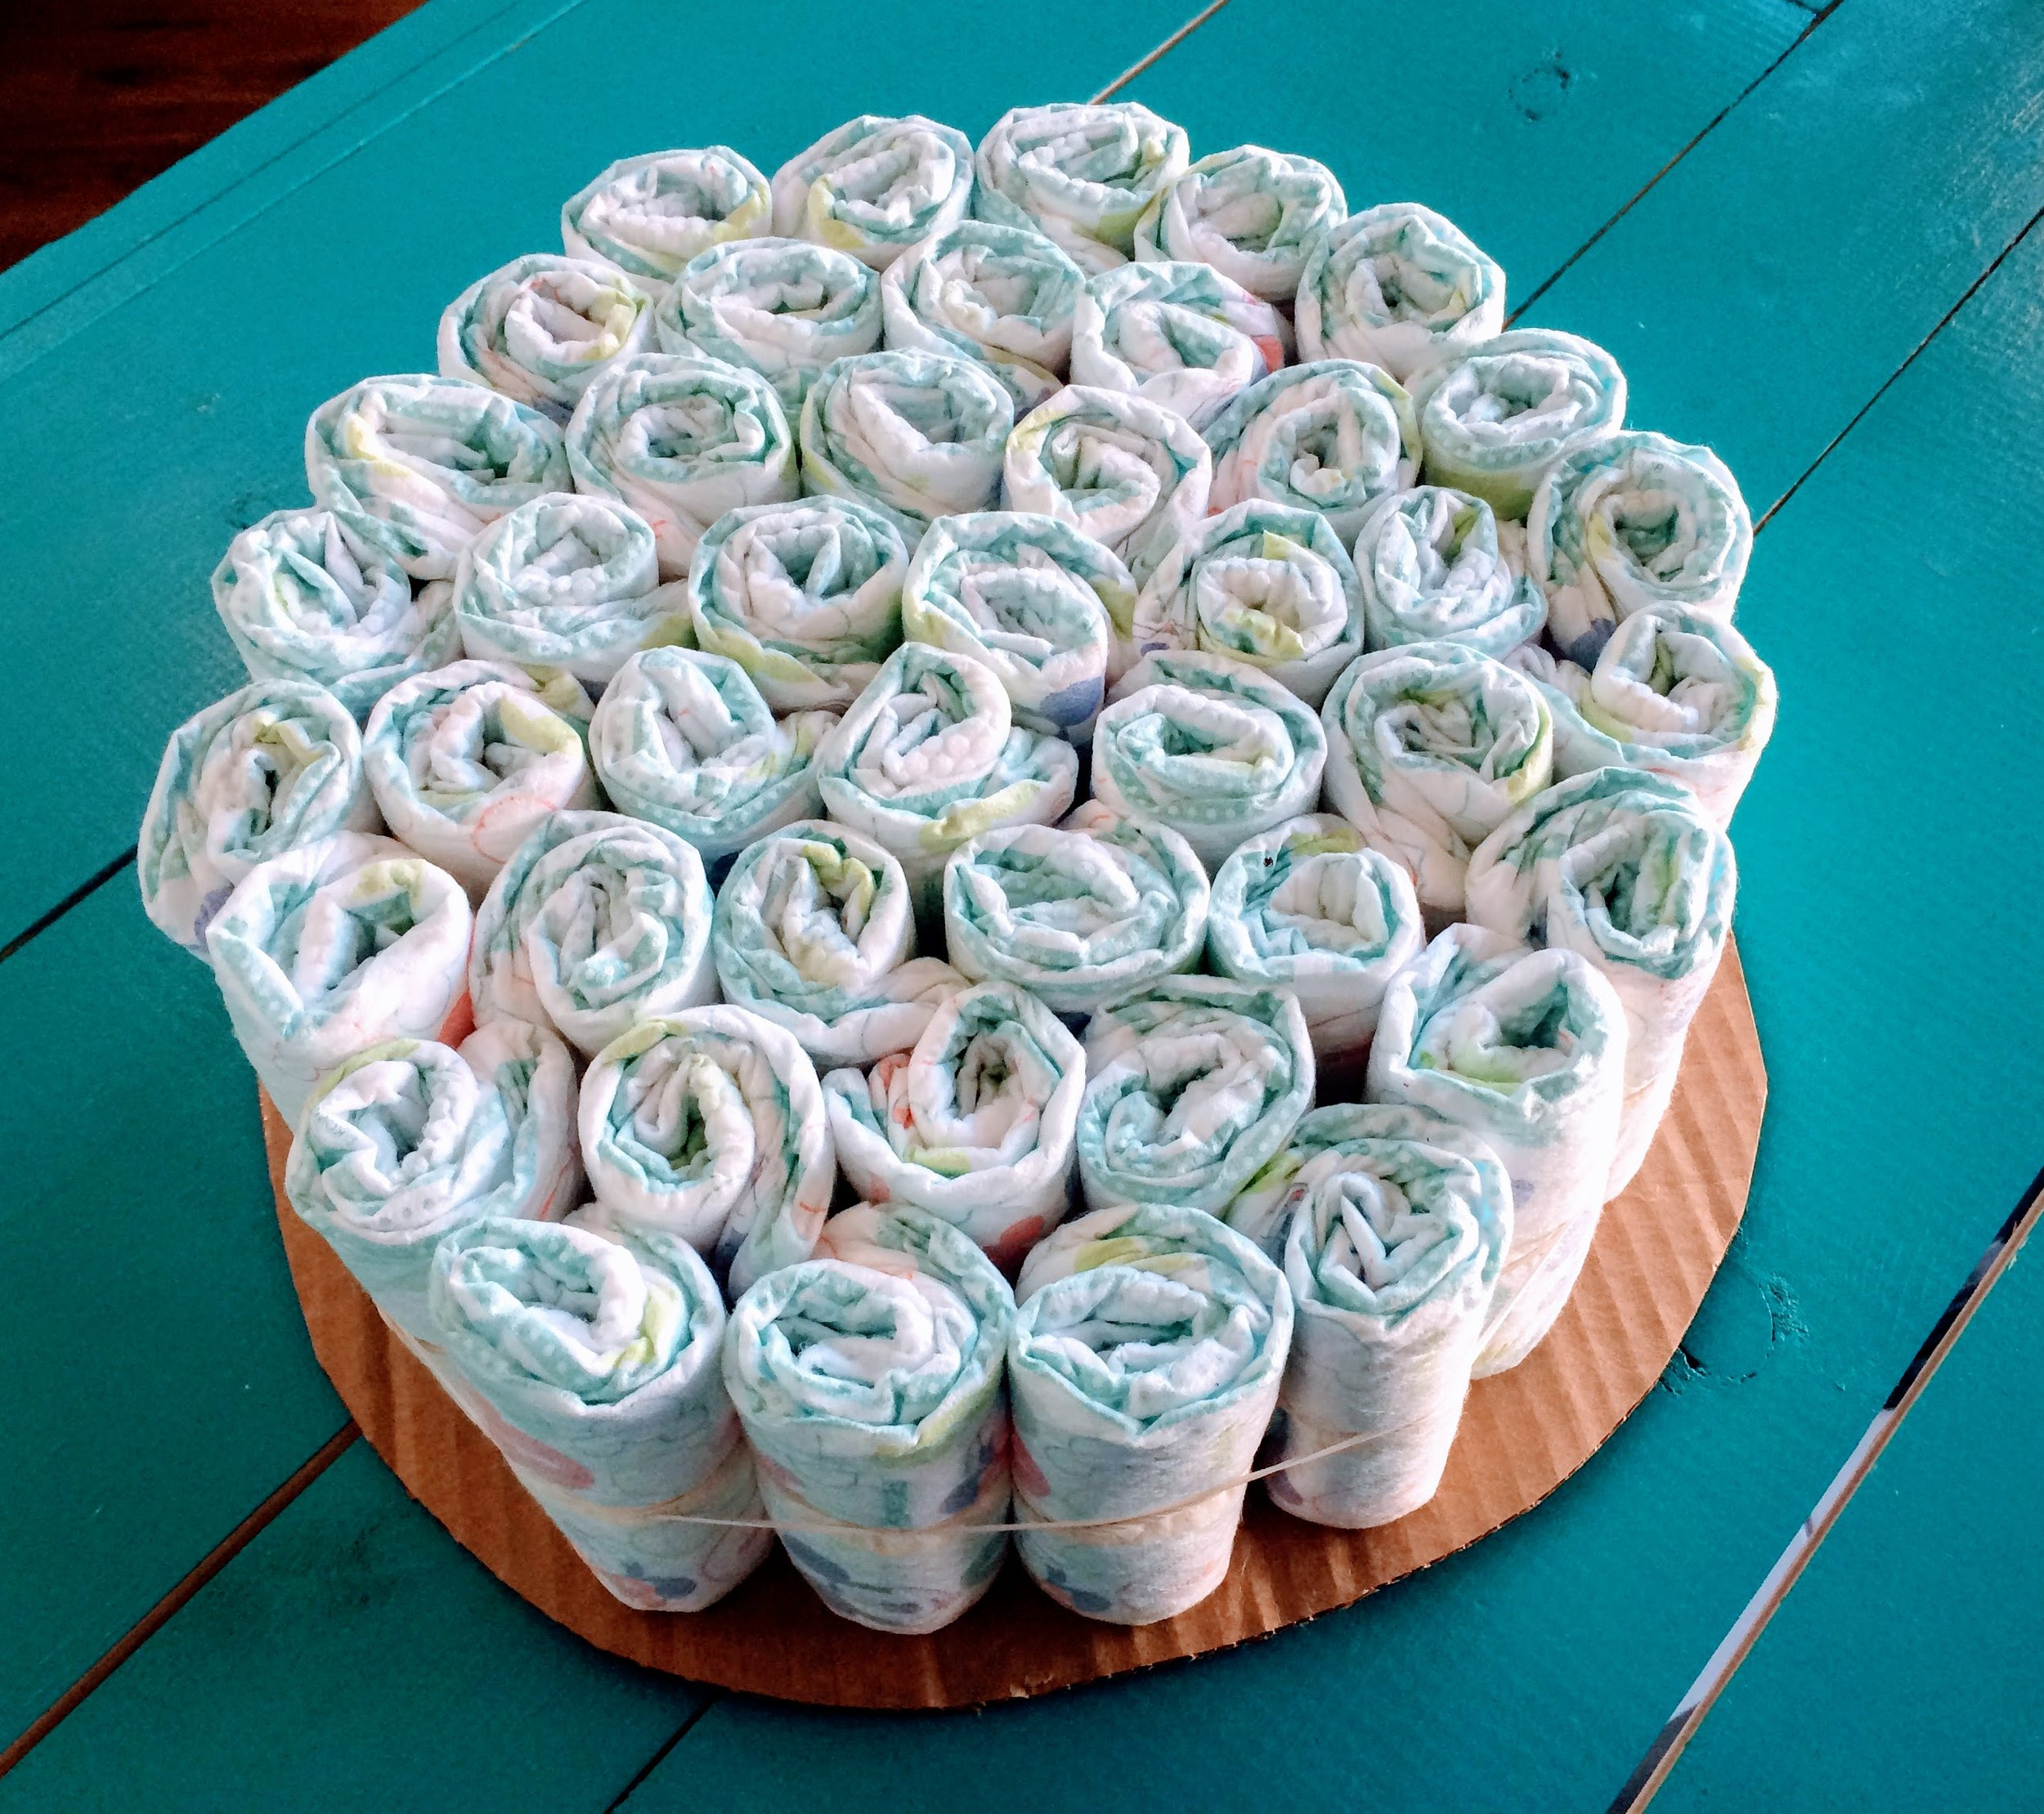 Next, gather all of your biggest diaper size together to form the bottom cake layer. You'll need a large rubber band for this part. If you have a helper, have them hold as many as possible while you set the rubber band around them. If you're doing it solo, just put as many as you can inside the rubber band to start, and continue adding around the outside, Rubber bands are stretchy - don't worry!